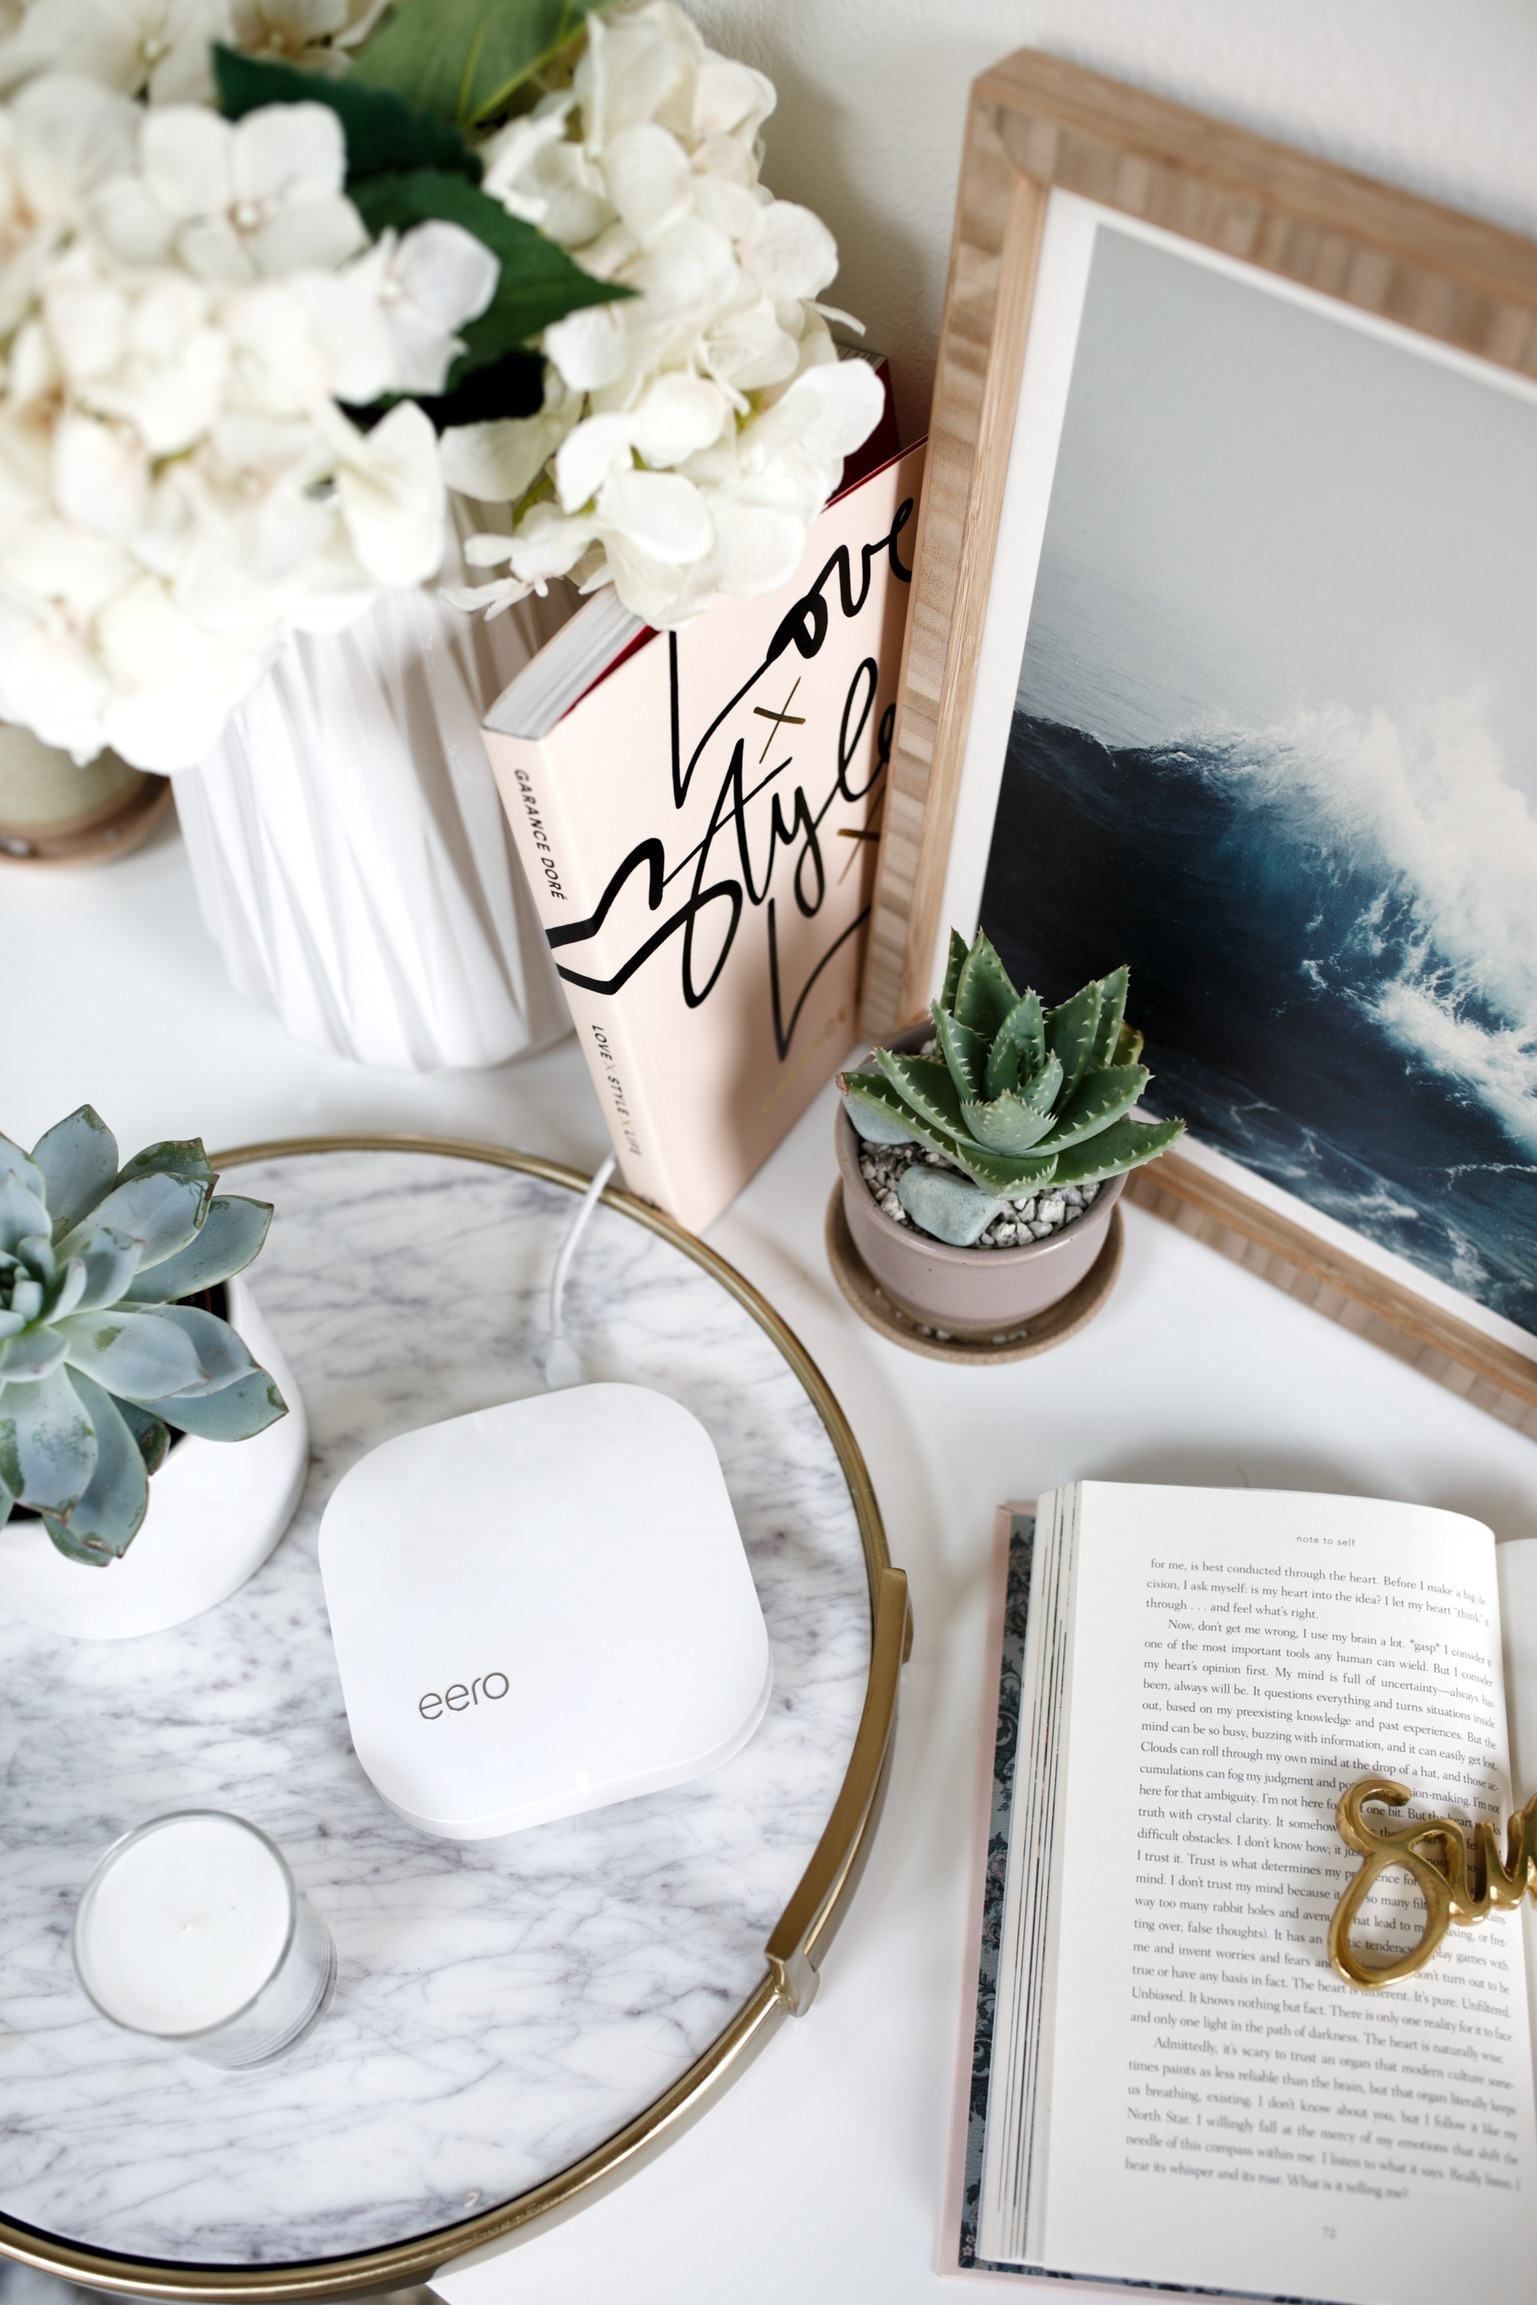 Improve WiFi in your Home Eero Review